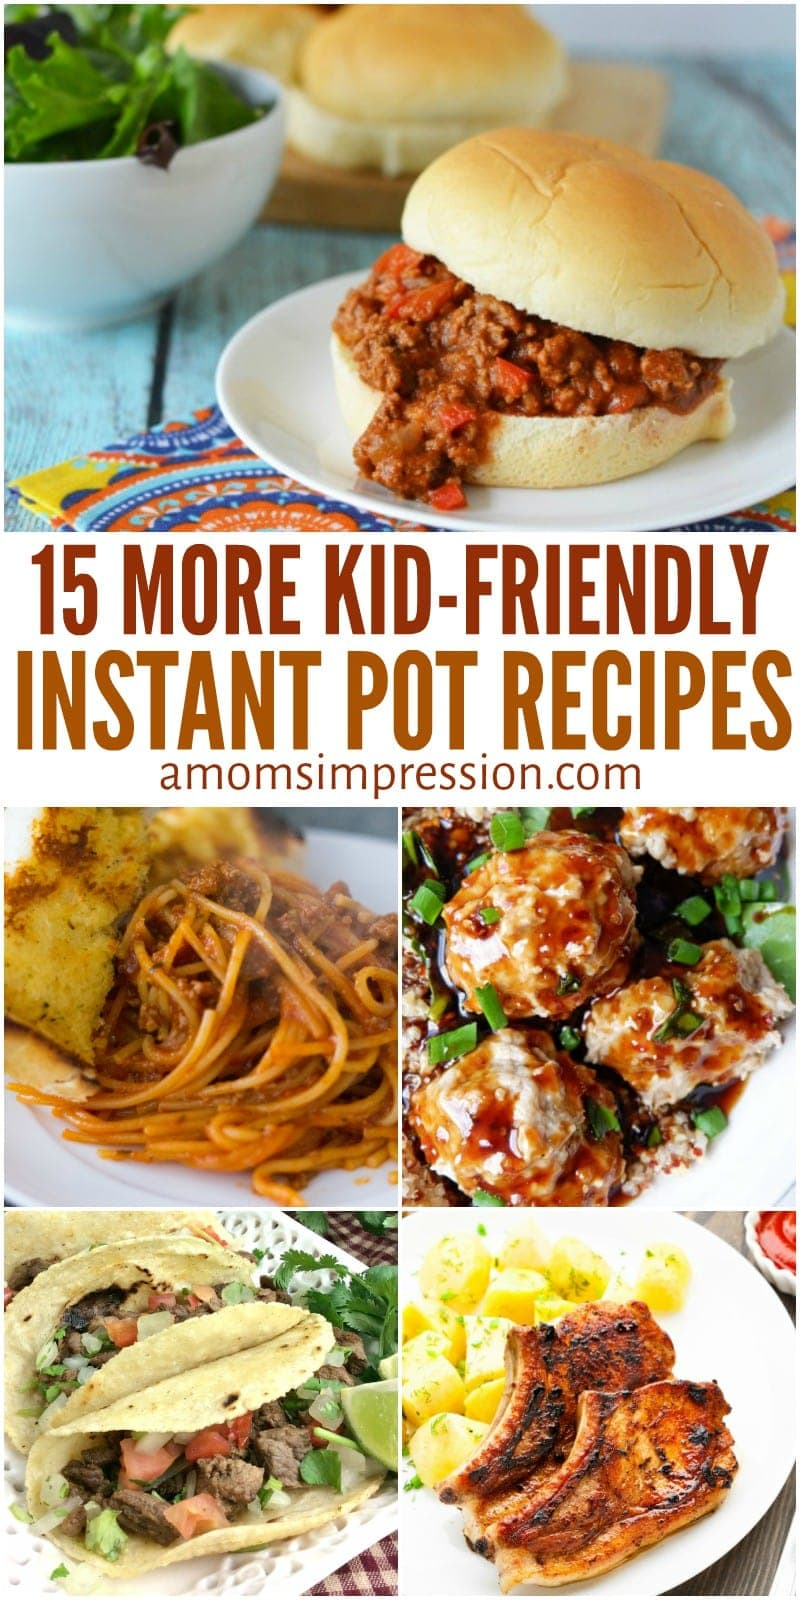 These new 15 Kid-Friendly Instant Pot recipes are quick and easy meals that your kids will love. Using your pressure cooker, you can get them to the table in minutes!